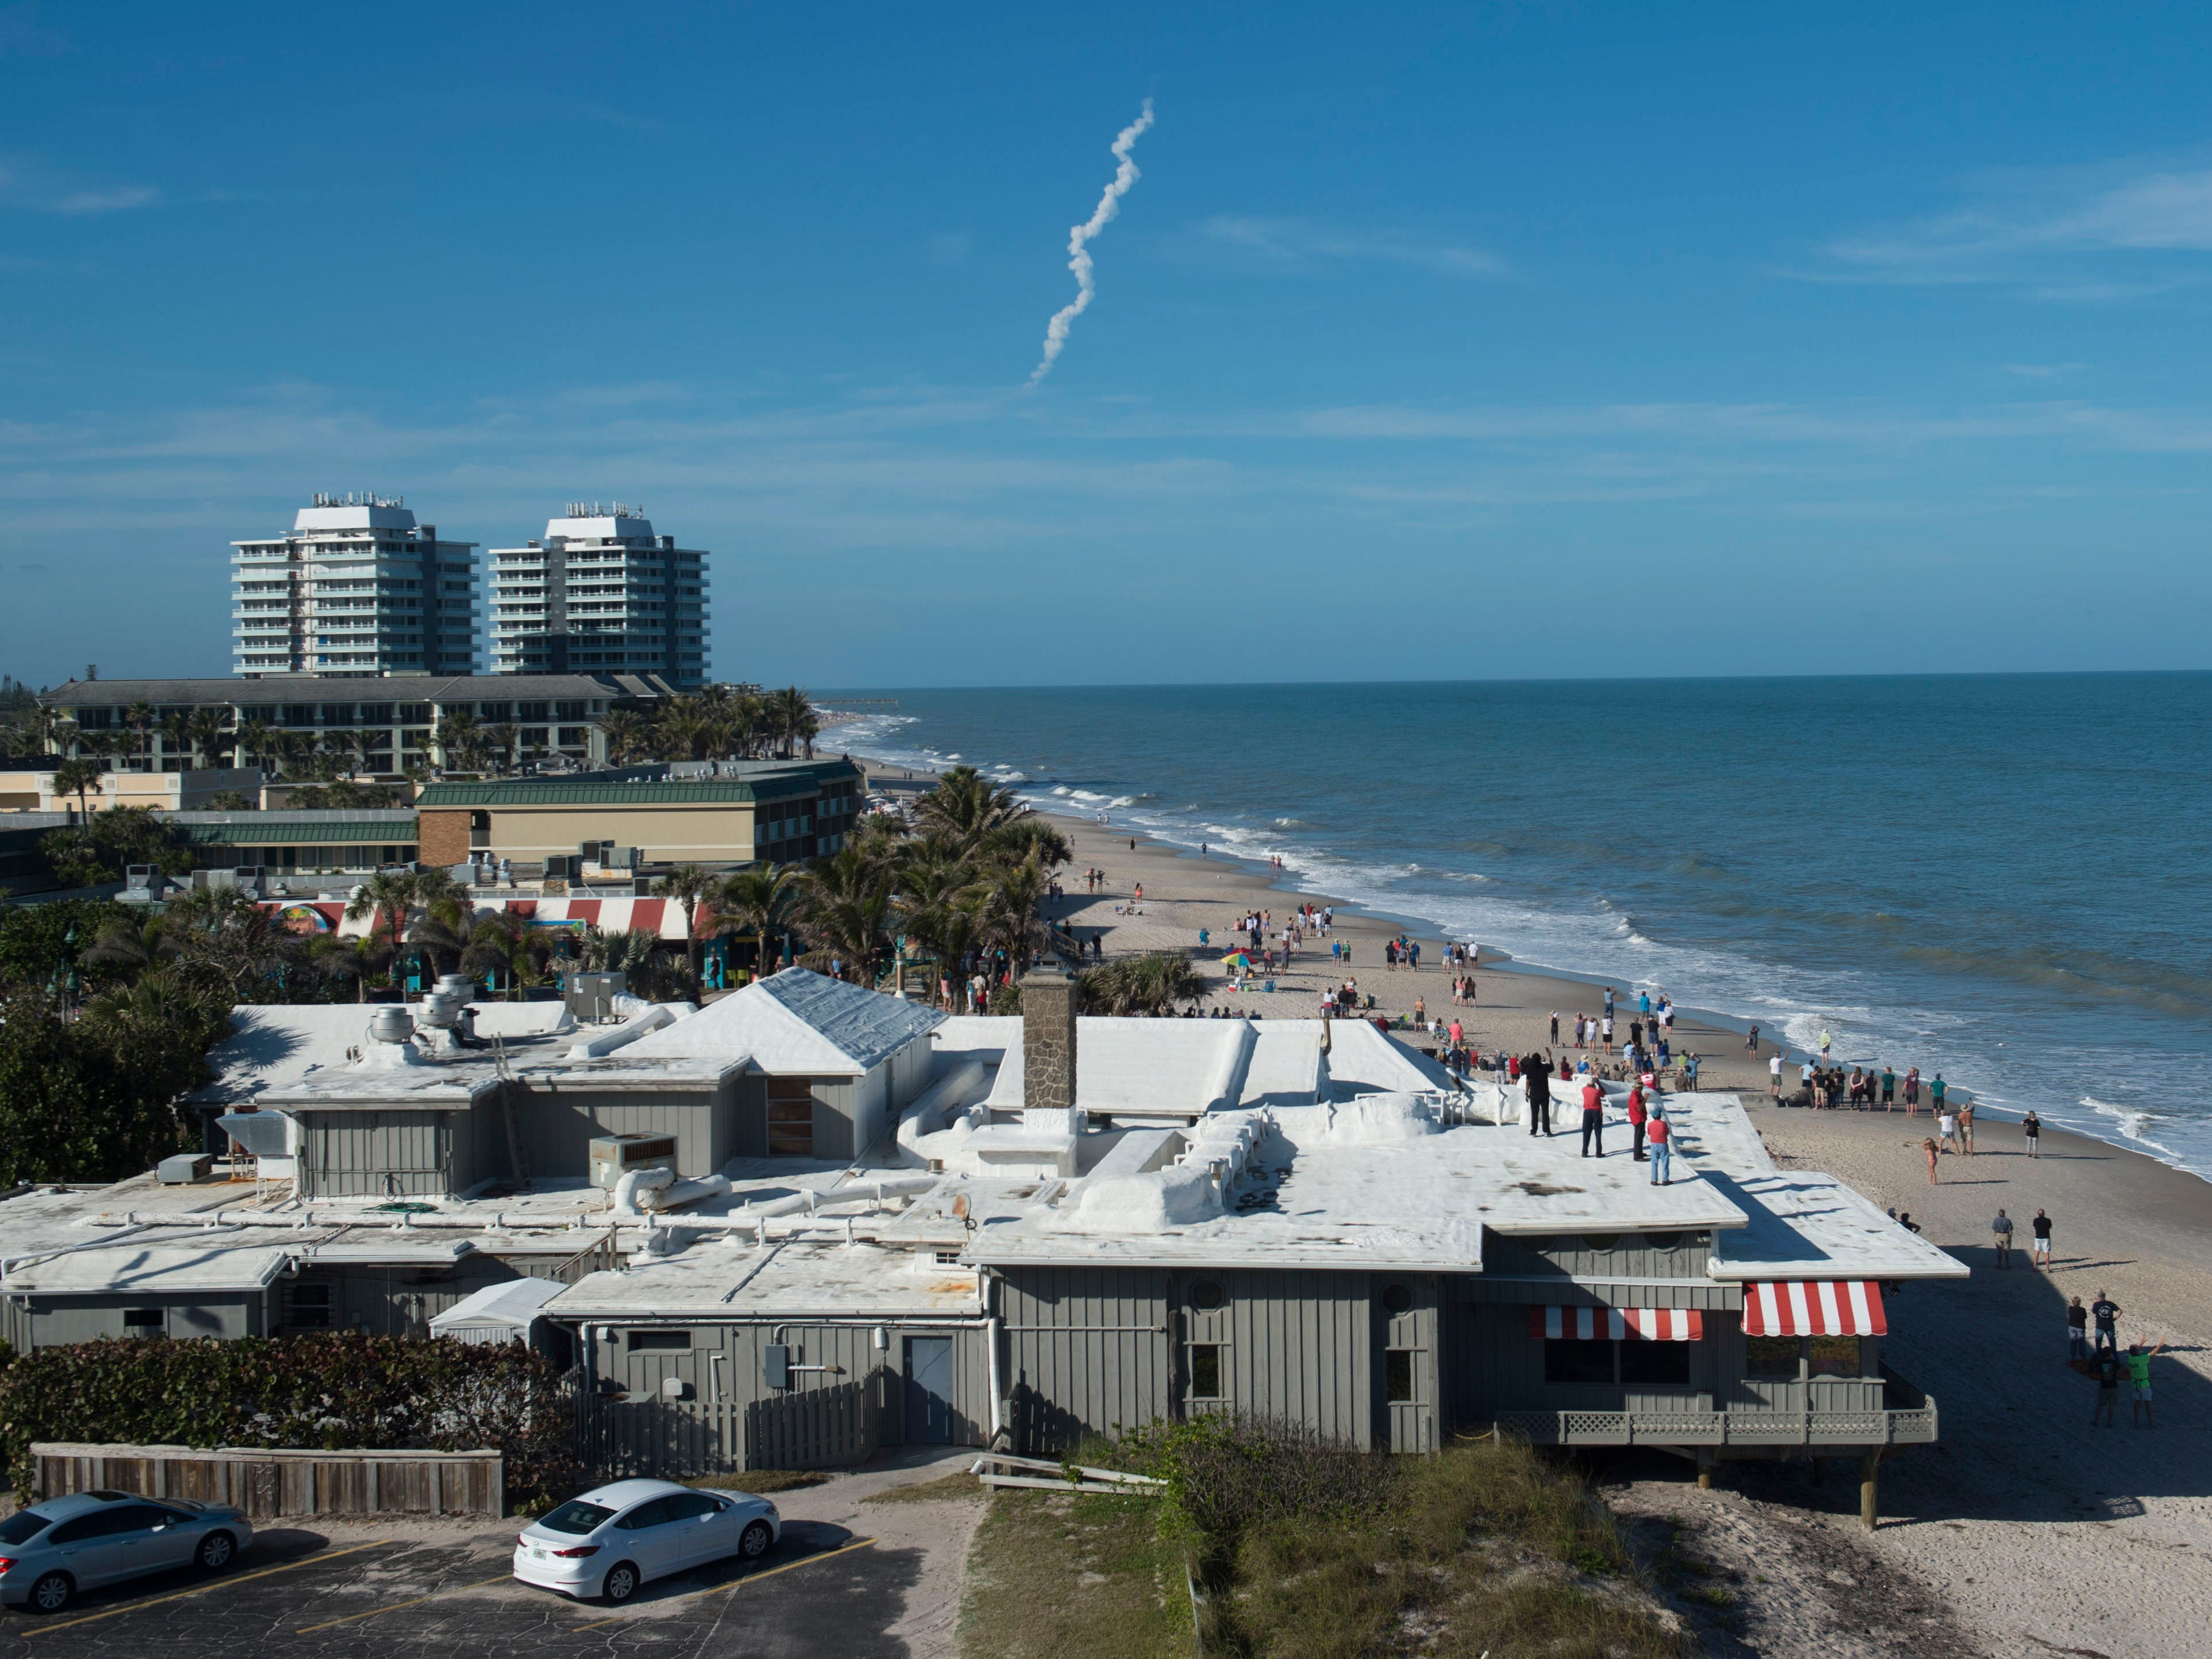 With a Tesla Roadster attached and a dummy named Starman in the driver's seat, Space X's Falcon Heavy spacecraft rocketed into space to the delight of observers on the beach Feb. 6, 2018, seen from the roof of Costa d'Este Beach Resort in Vero Beach. Space X founder Elon Musk hopes the Falcon Heavy will float in elliptical orbit between Earth and Mars for about a billion years.